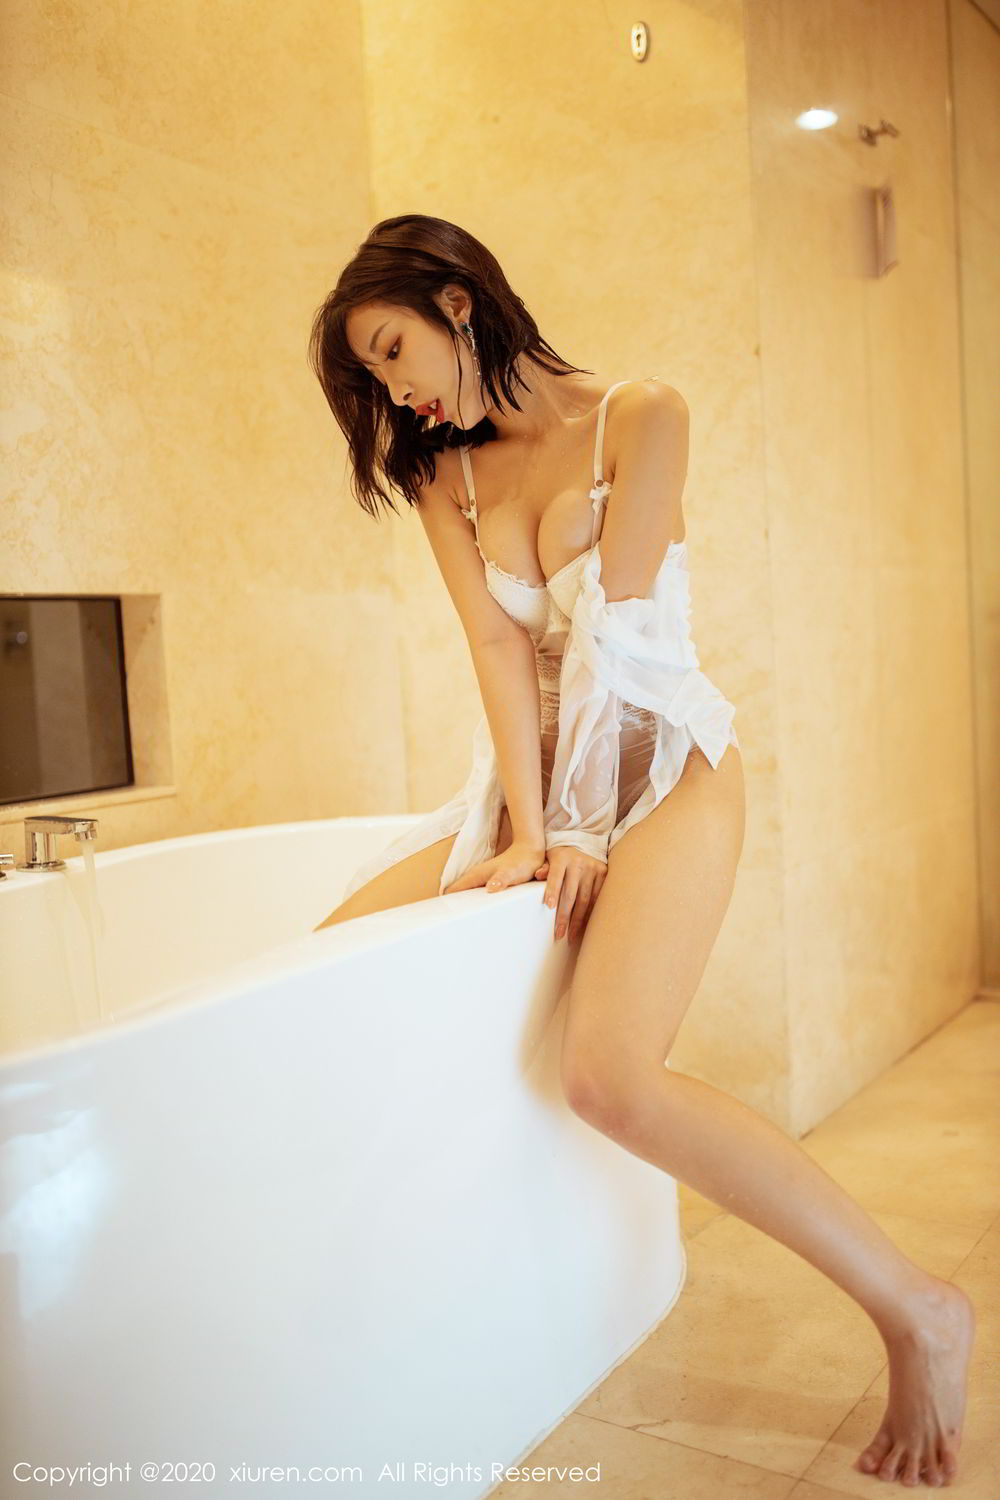 [XiuRen] Vol.2158 Chen Xiao Miao 34P, Bathroom, Chen Xiao Miao, Tall, Wet, Xiuren